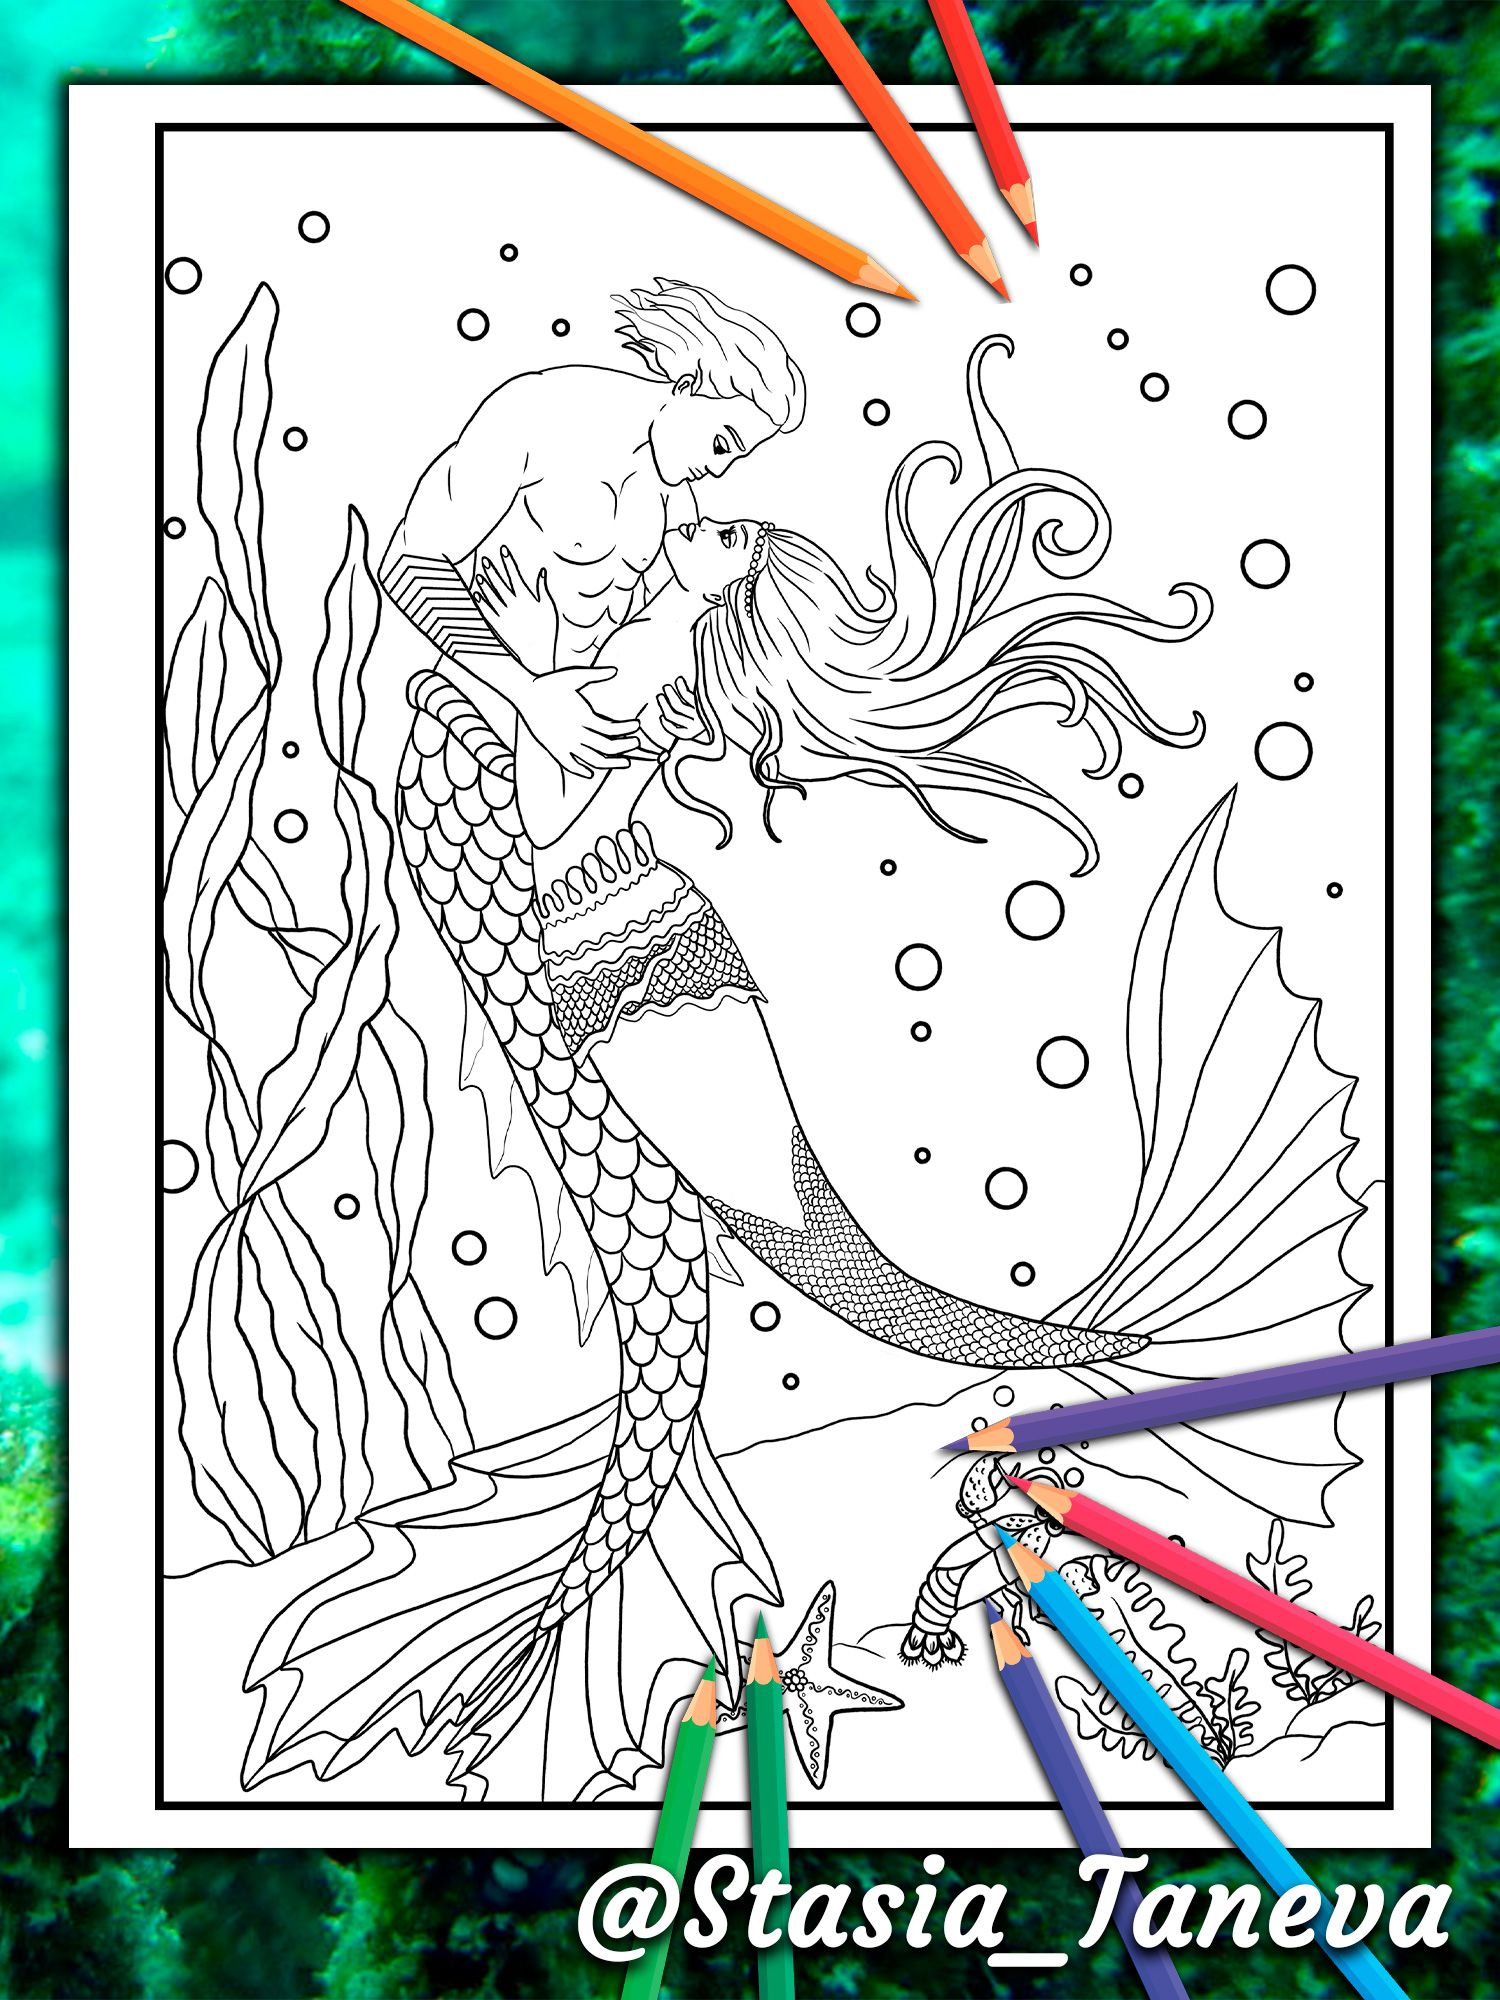 Loving Couple Of Mermaids In Each Other S Hot Embrace Mermaid Coloring Book For Adults By Page Mermaid Coloring Book Mermaid Coloring Pages Mermaid Coloring [ 2000 x 1500 Pixel ]